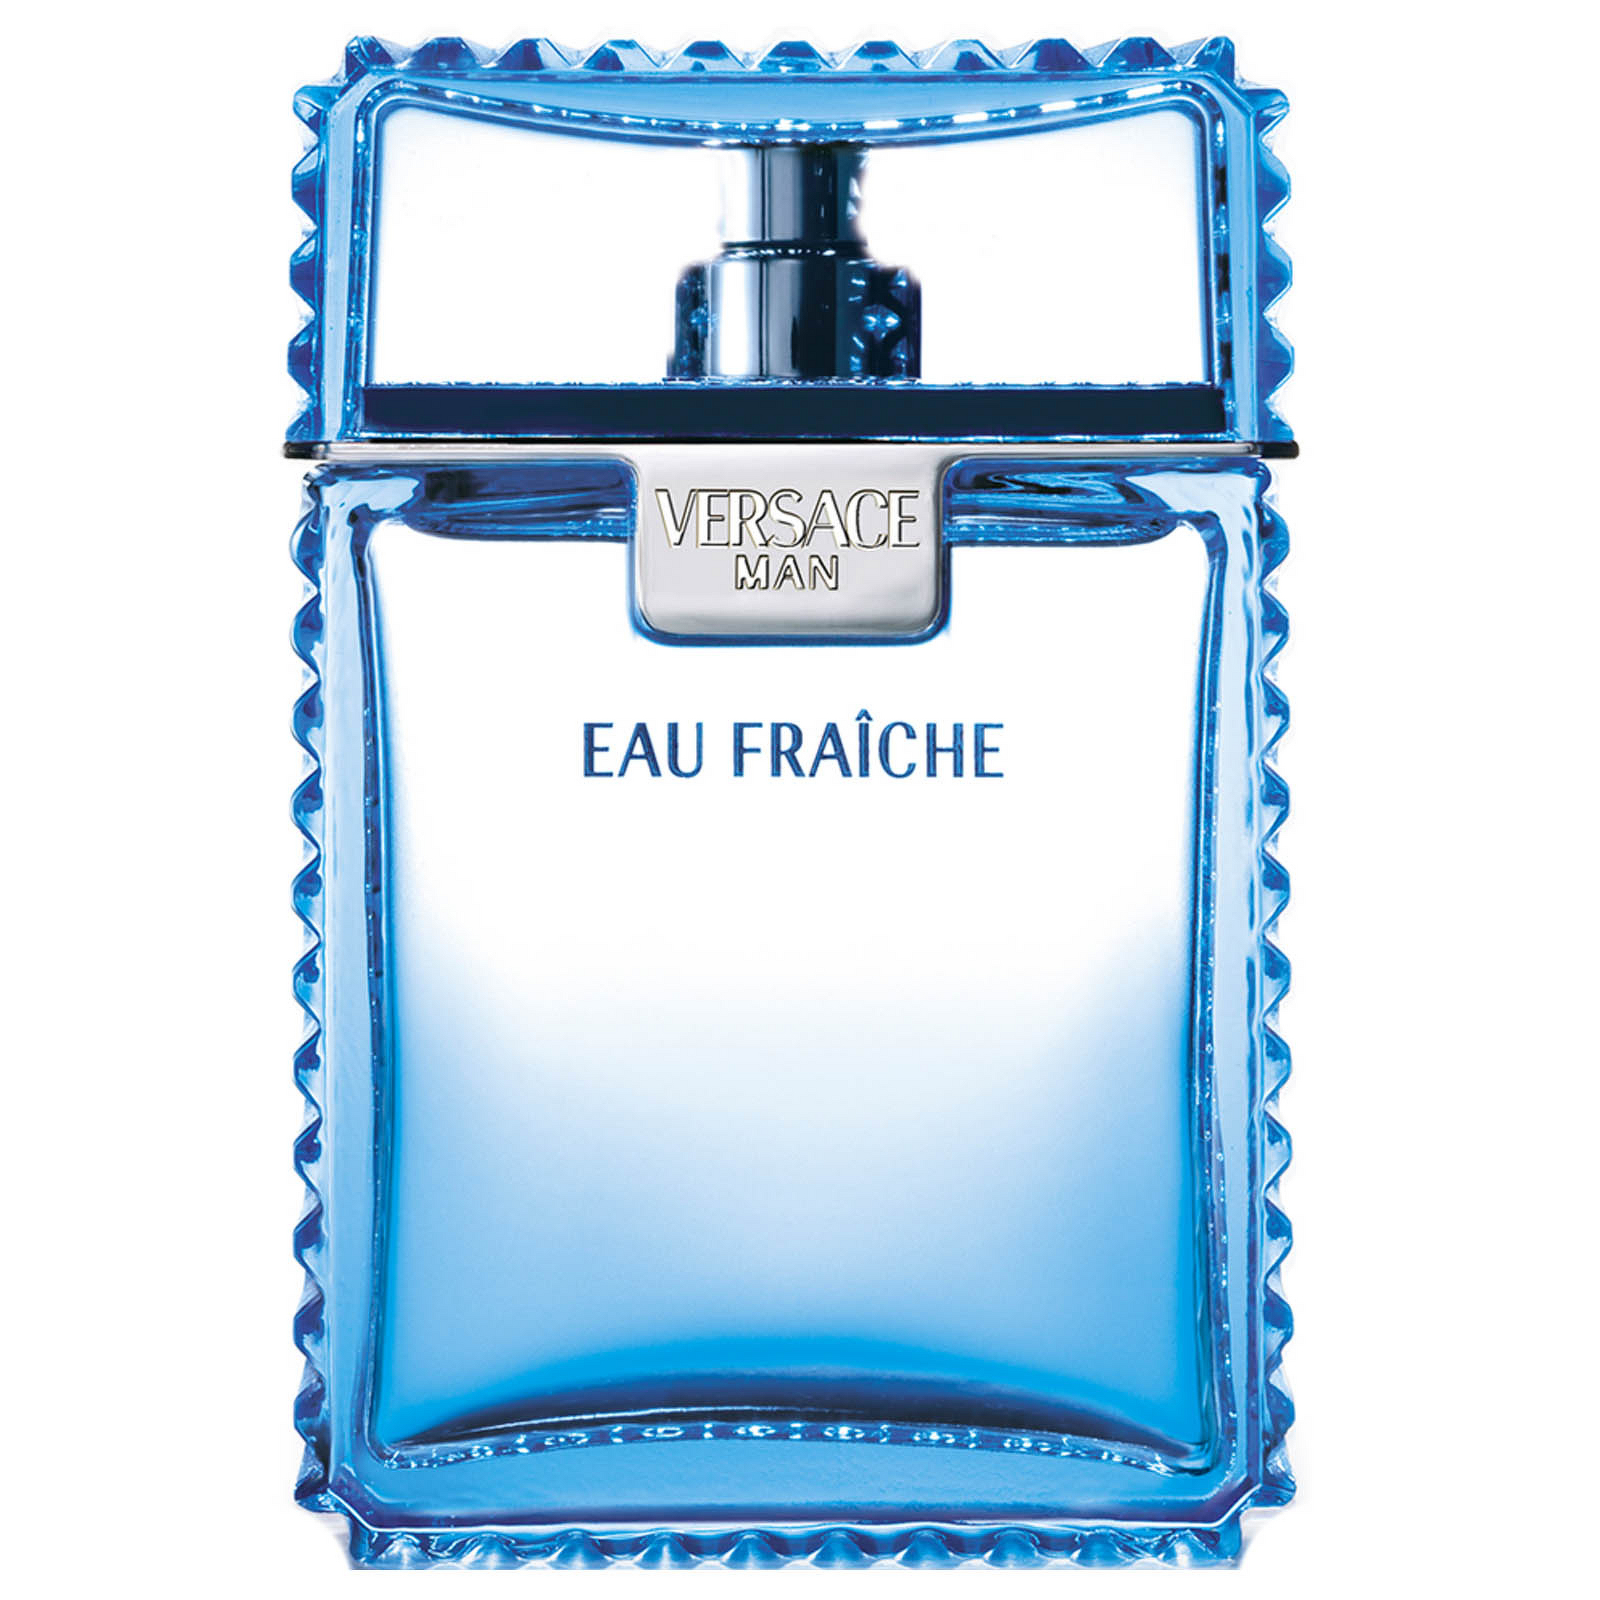 Versace Man Eau Fraiche (Eau de Toilette Spray 100ml)